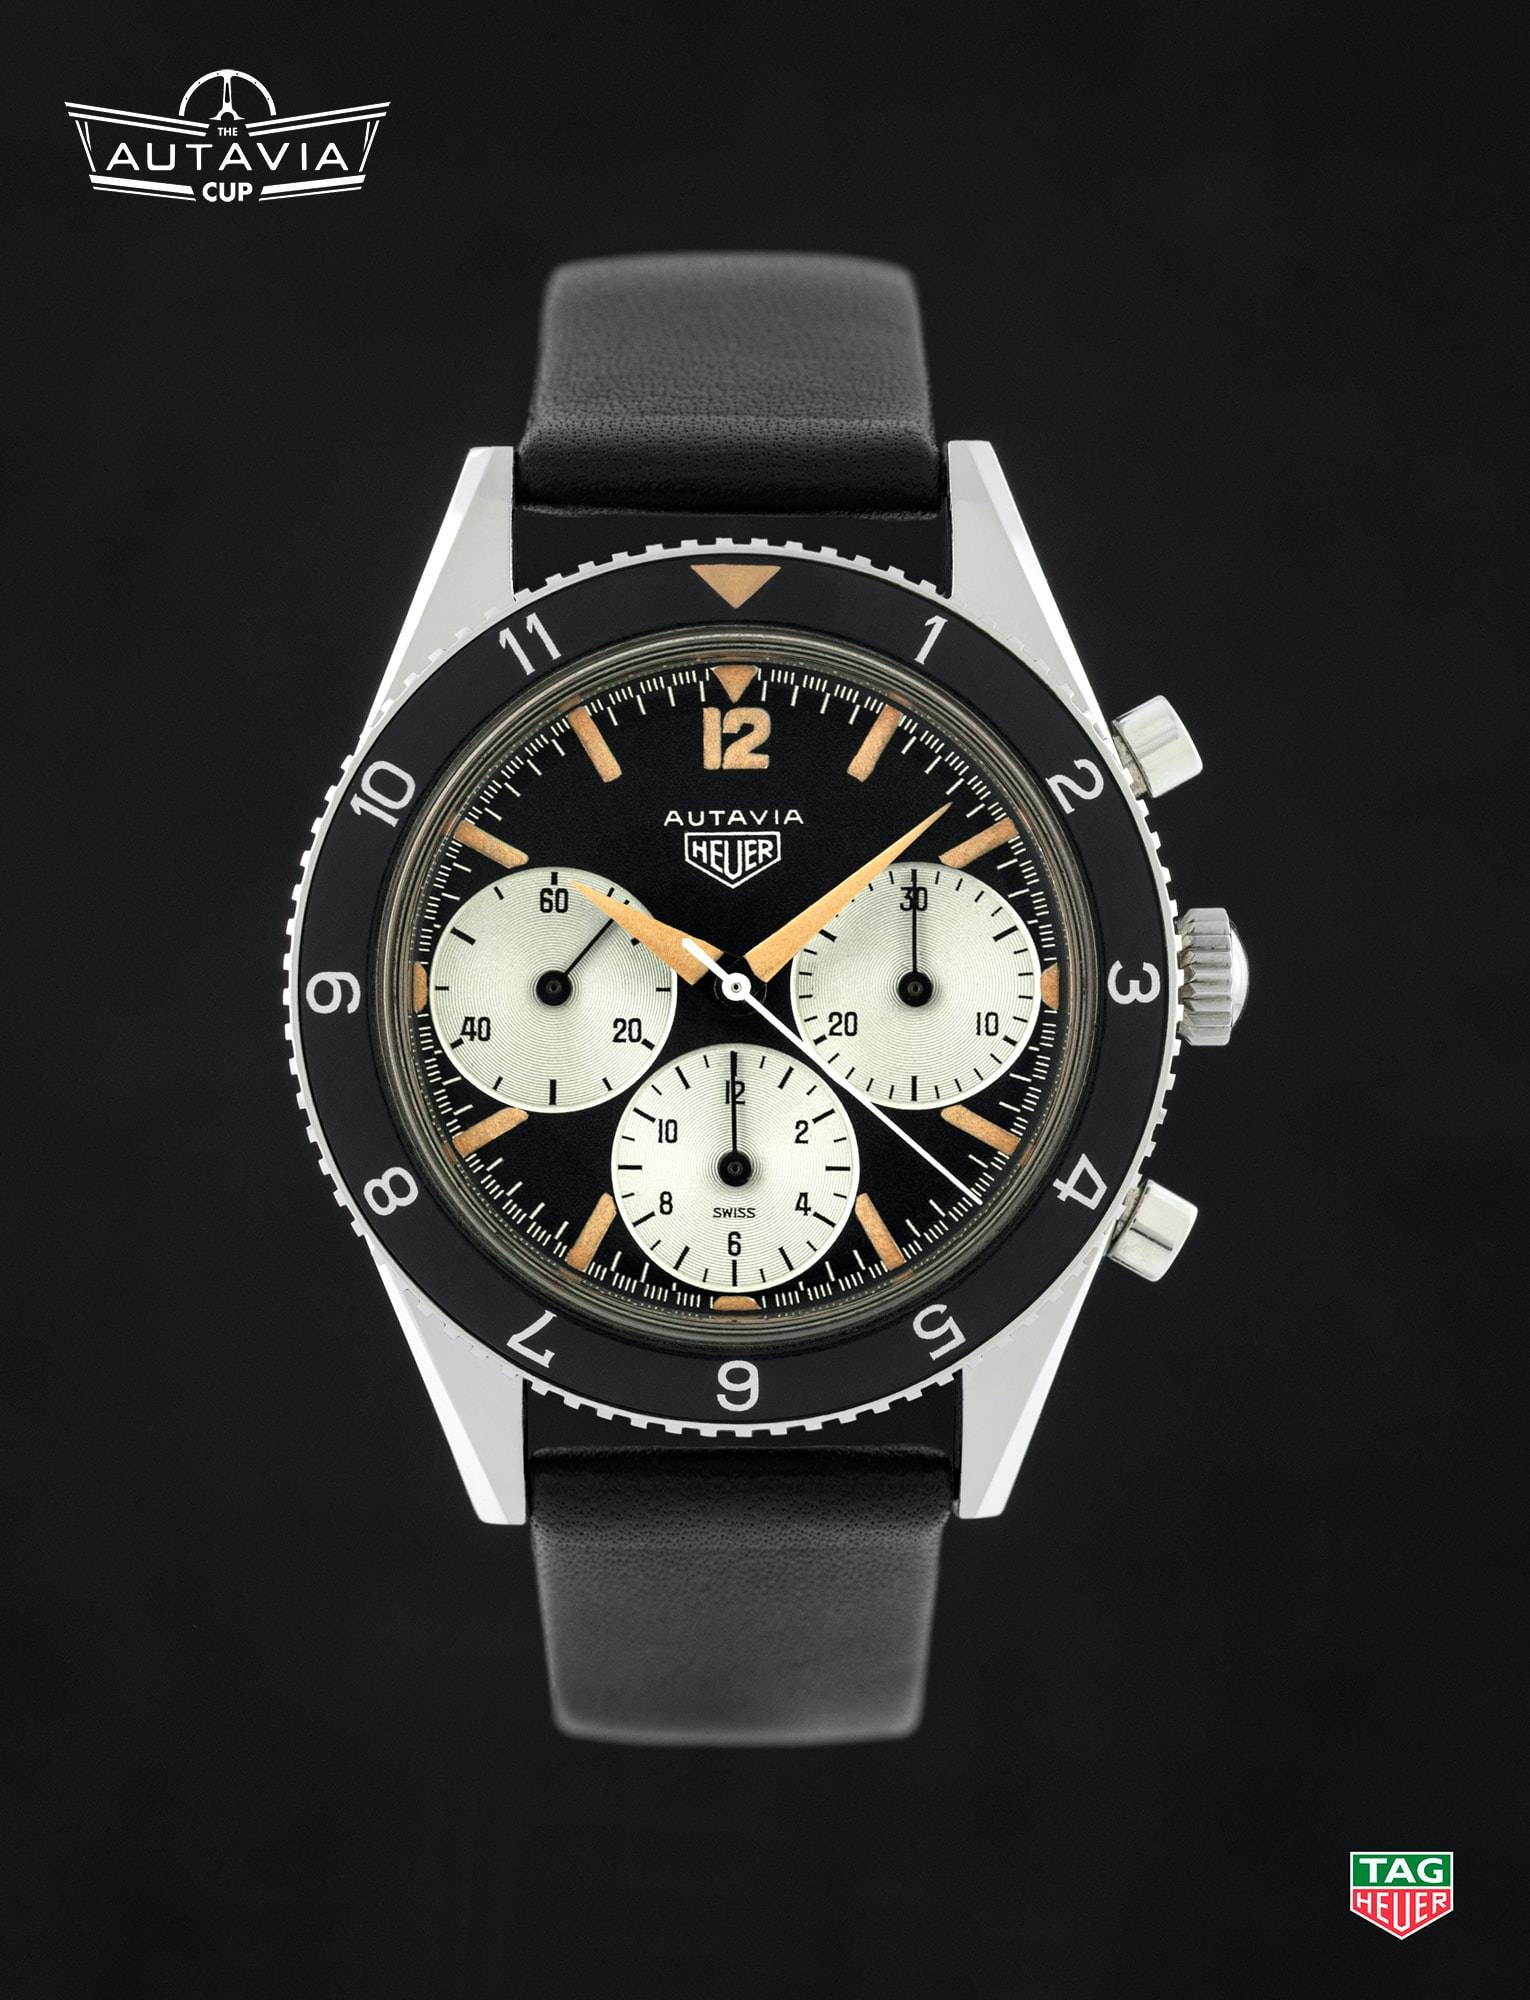 Heuer Autavia Ref. 2446 Mk1 Lume  TAG Heuer Will Relaunch The Autavia In 2017 – And Fans Get To Choose The Model TAG Heuer Will Relaunch The Autavia In 2017 – And Fans Get To Choose The Model 02 2446 Mk1 Lume